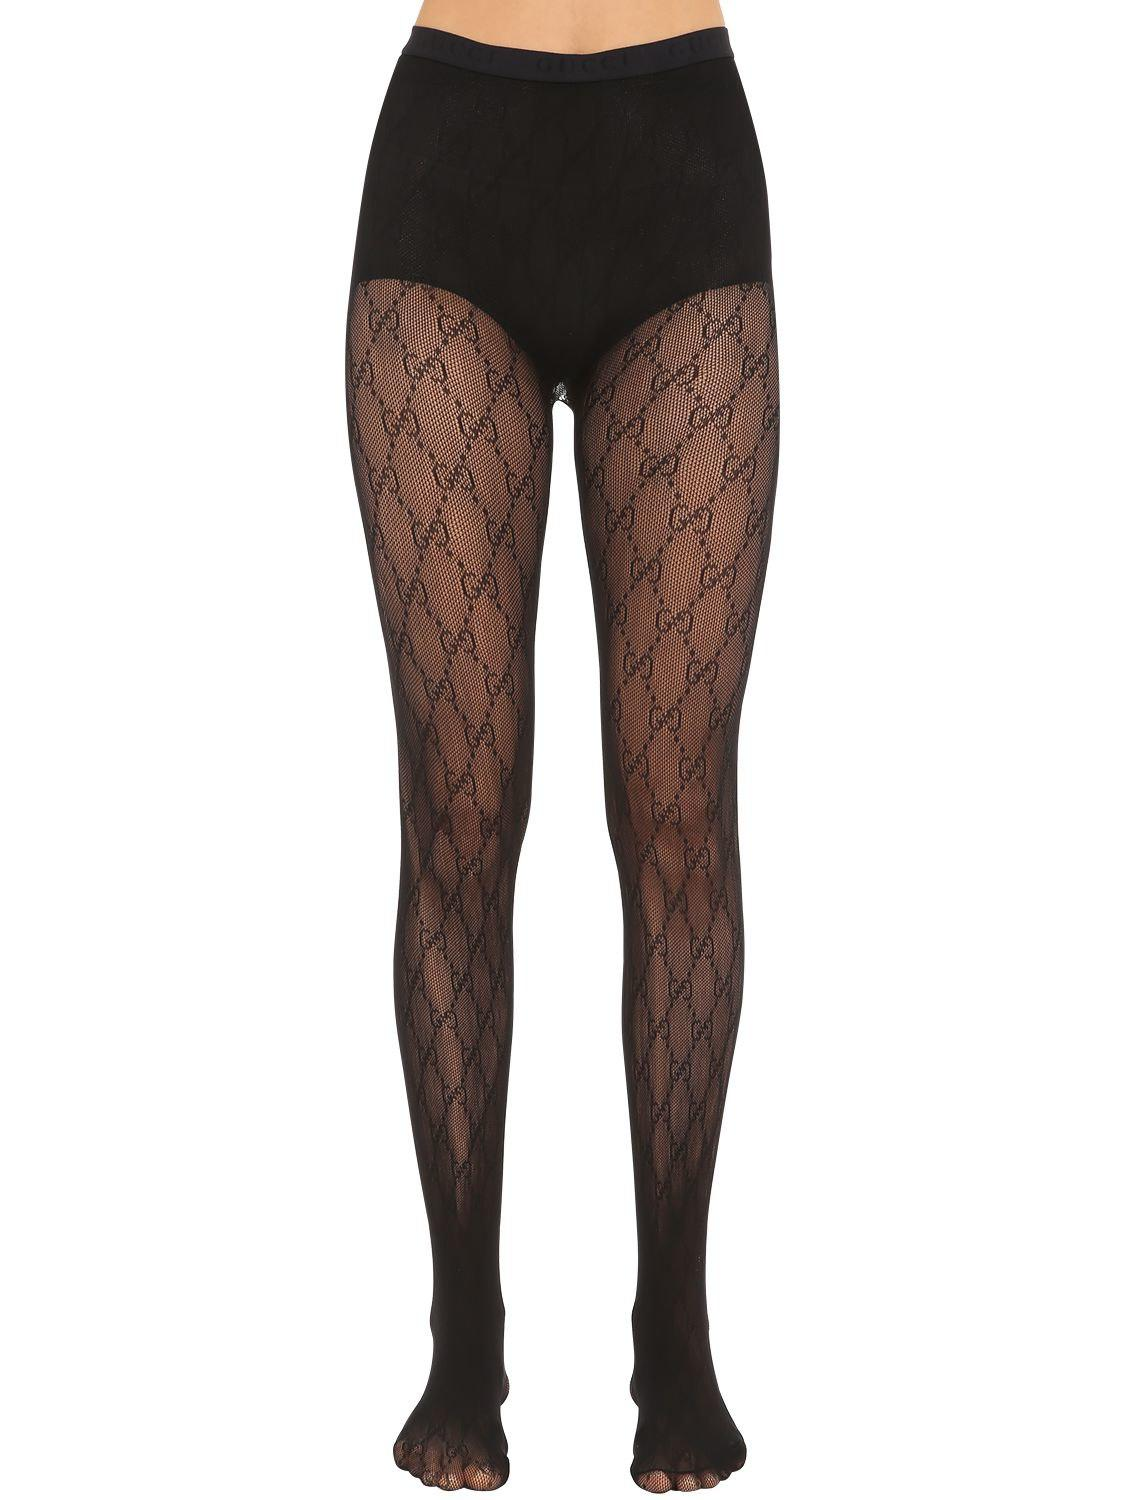 1f3b10a79b Gucci Gg Supreme Stockings in Black - Lyst